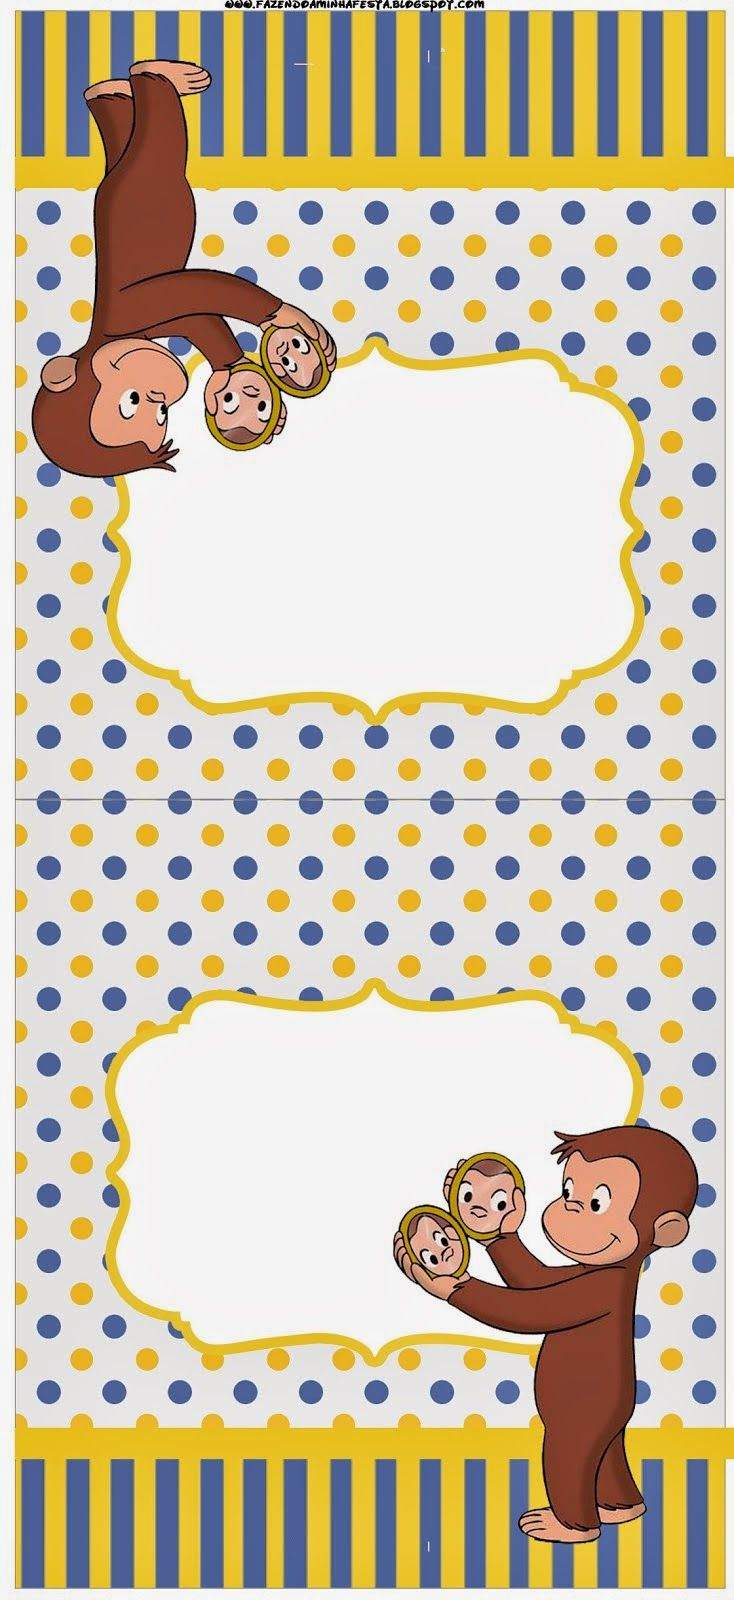 Curious George Free Party Printables. - Is it for PARTIES? Is it FREE? Is it CUTE? Has QUALITY? It´s HERE! Oh My Fiesta!